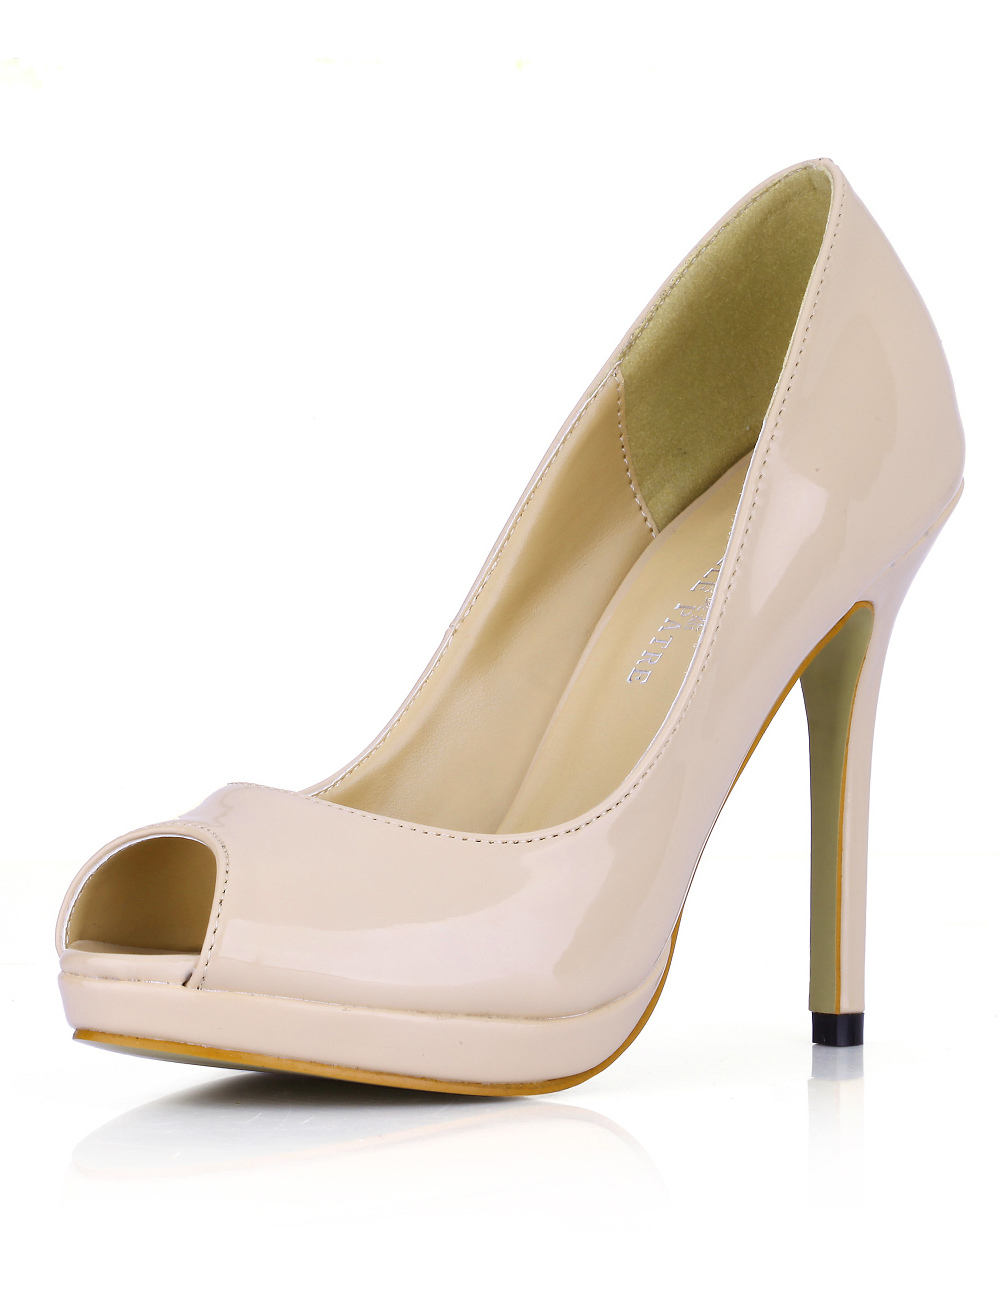 Fashion Concise Nude Color Patent Leather Women's Peep Toe Pumps